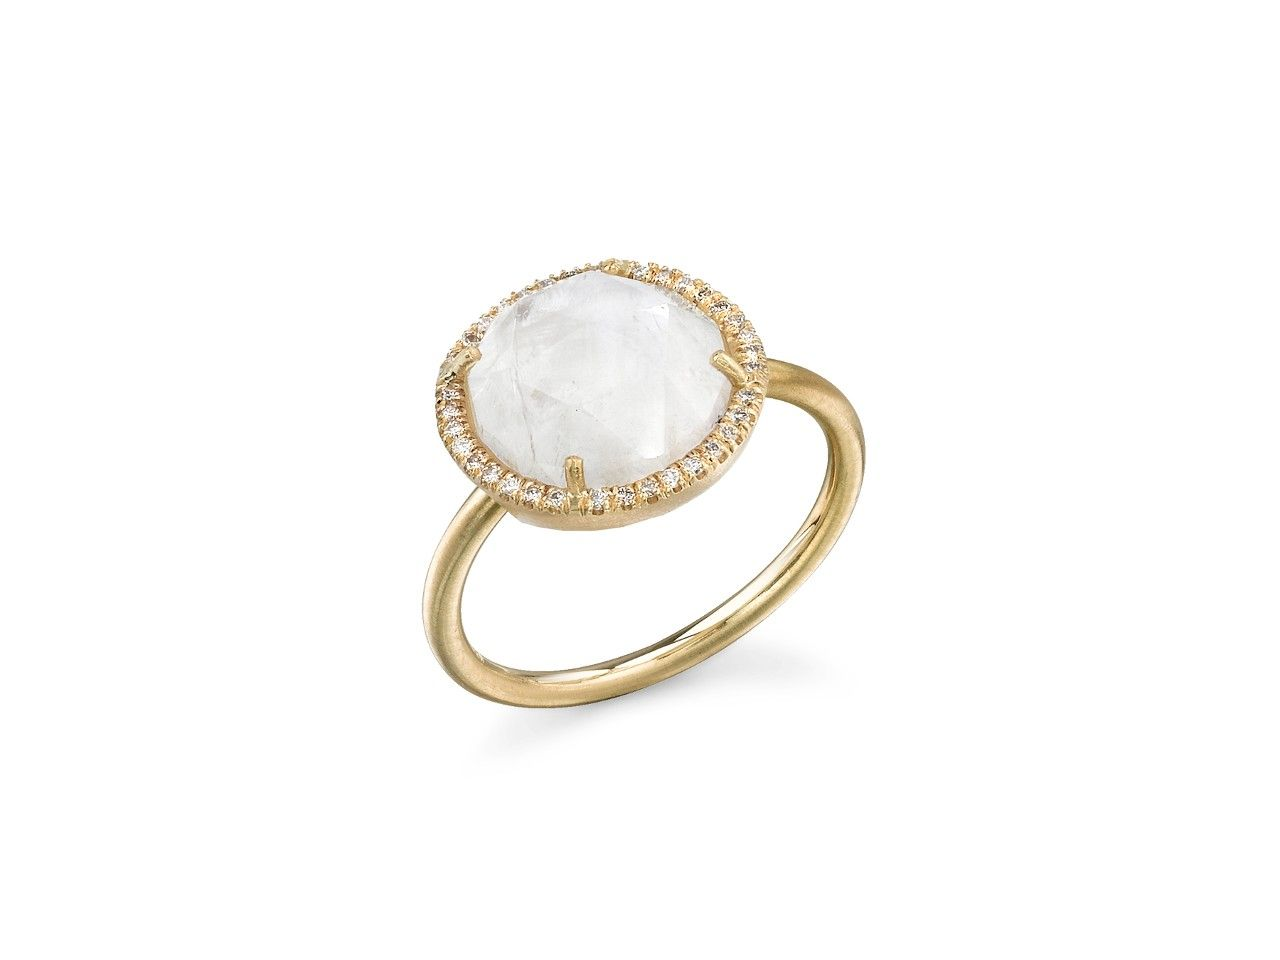 Irene Neuwirth Rainbow moonstone & yellow-gold ring